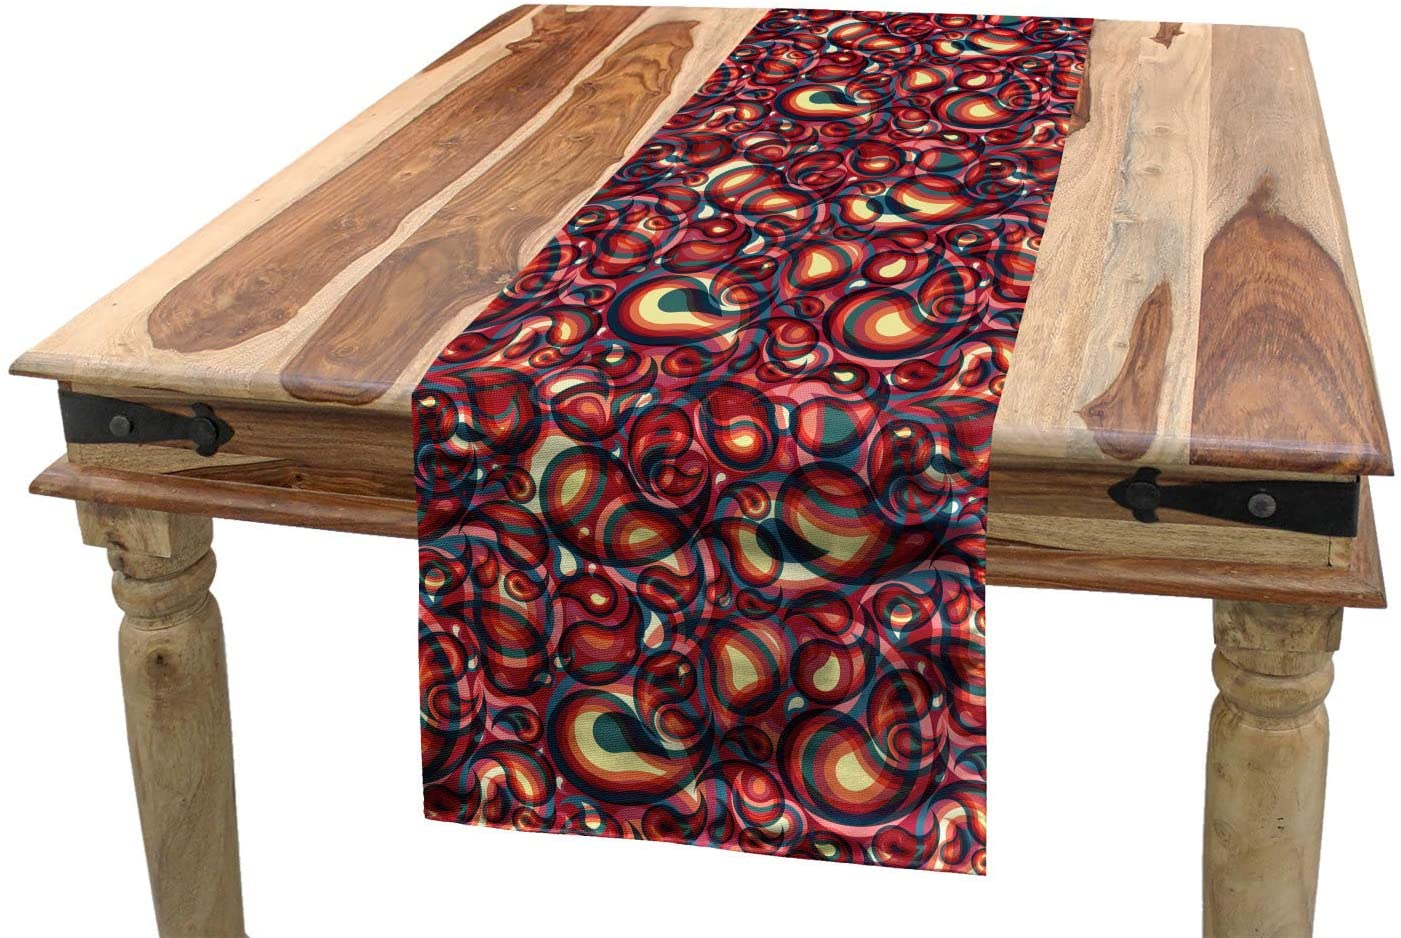 Ambesonne Paisley Table Runner, Modern Paisley Pattern with Spirit in a Funky Inspired Graphic Design Print, Dining Room Kitchen Rectangular Runner, 16